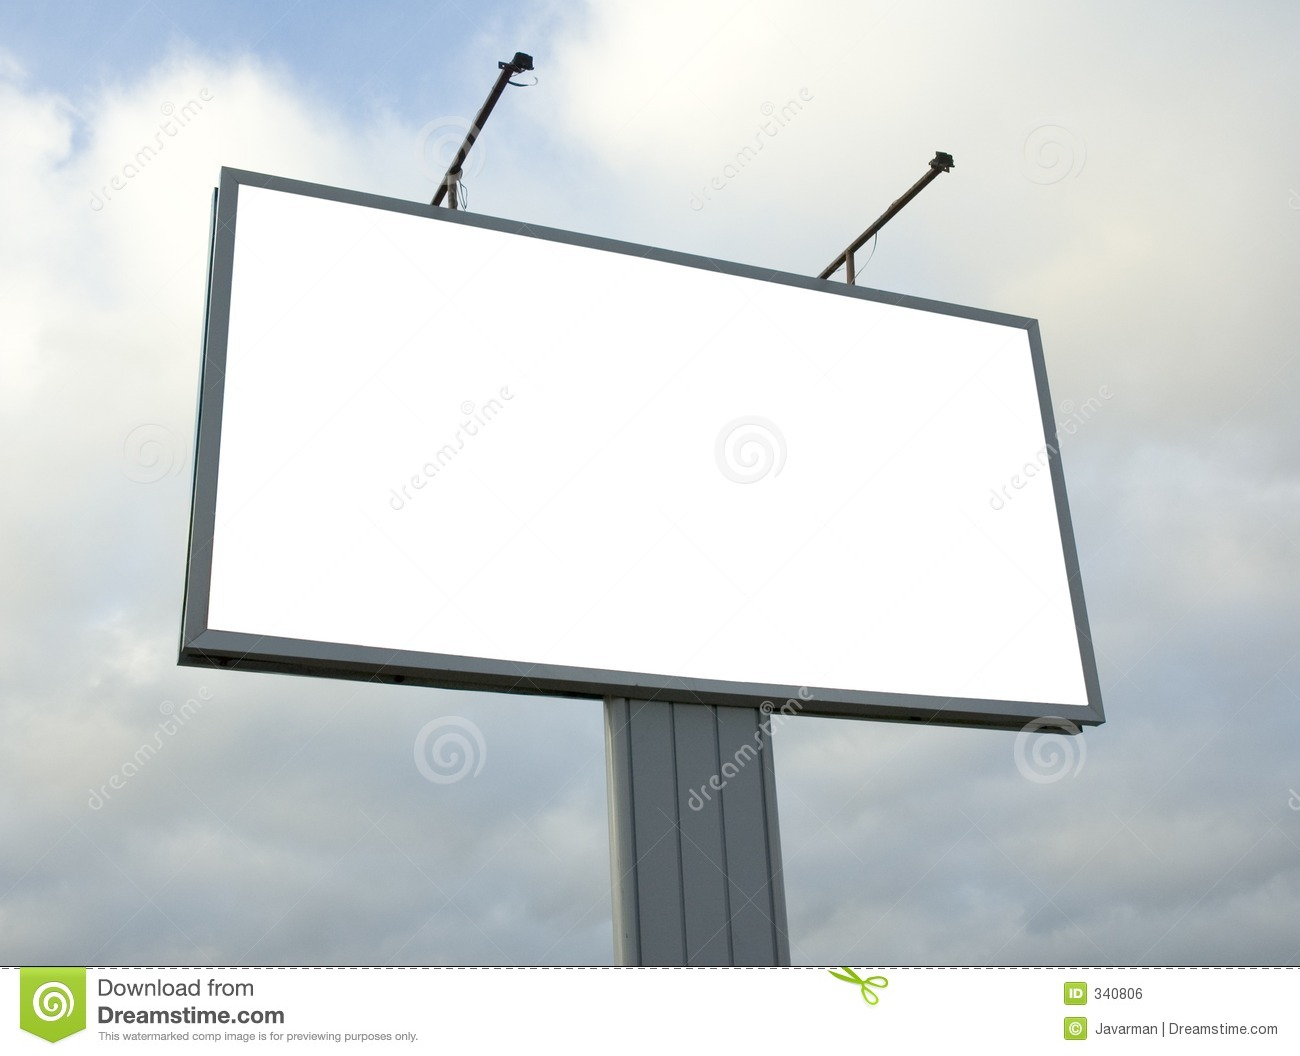 Blank billboard stock photo. Image of lamps, display, announcement.